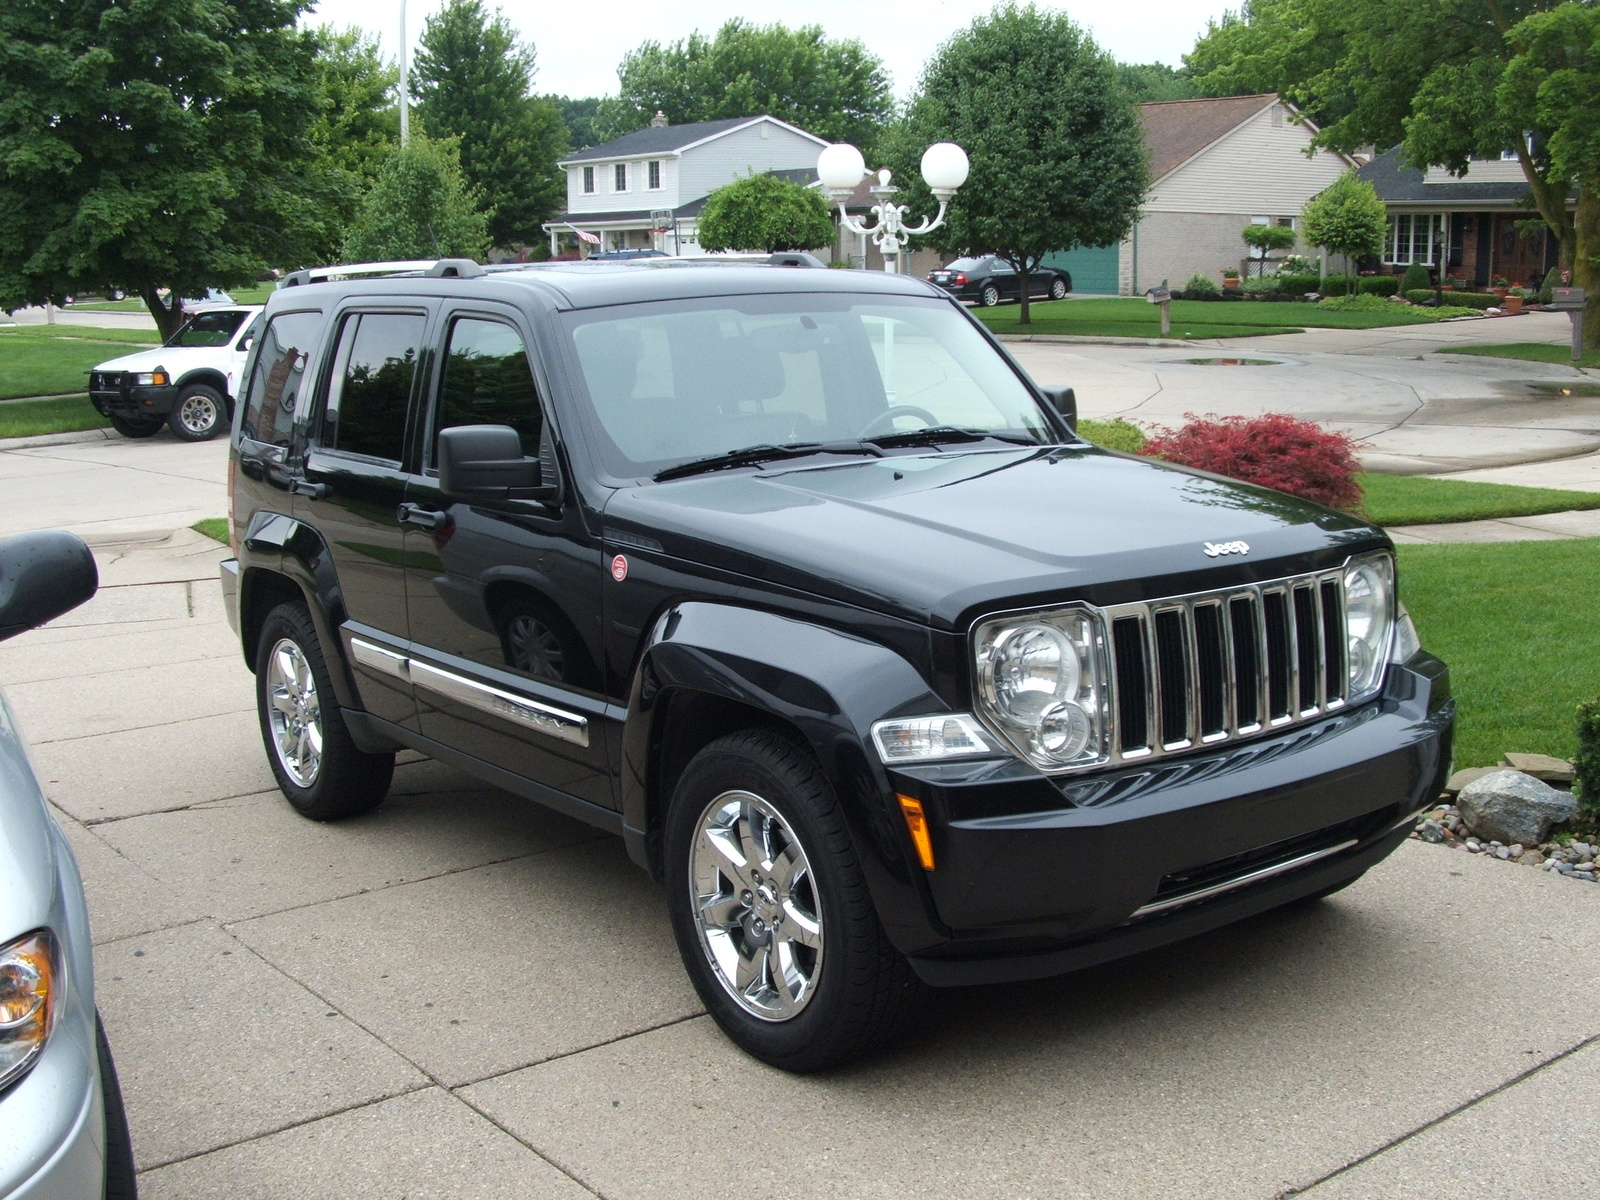 jeep liberty questions - how many miles can i expect to be able to